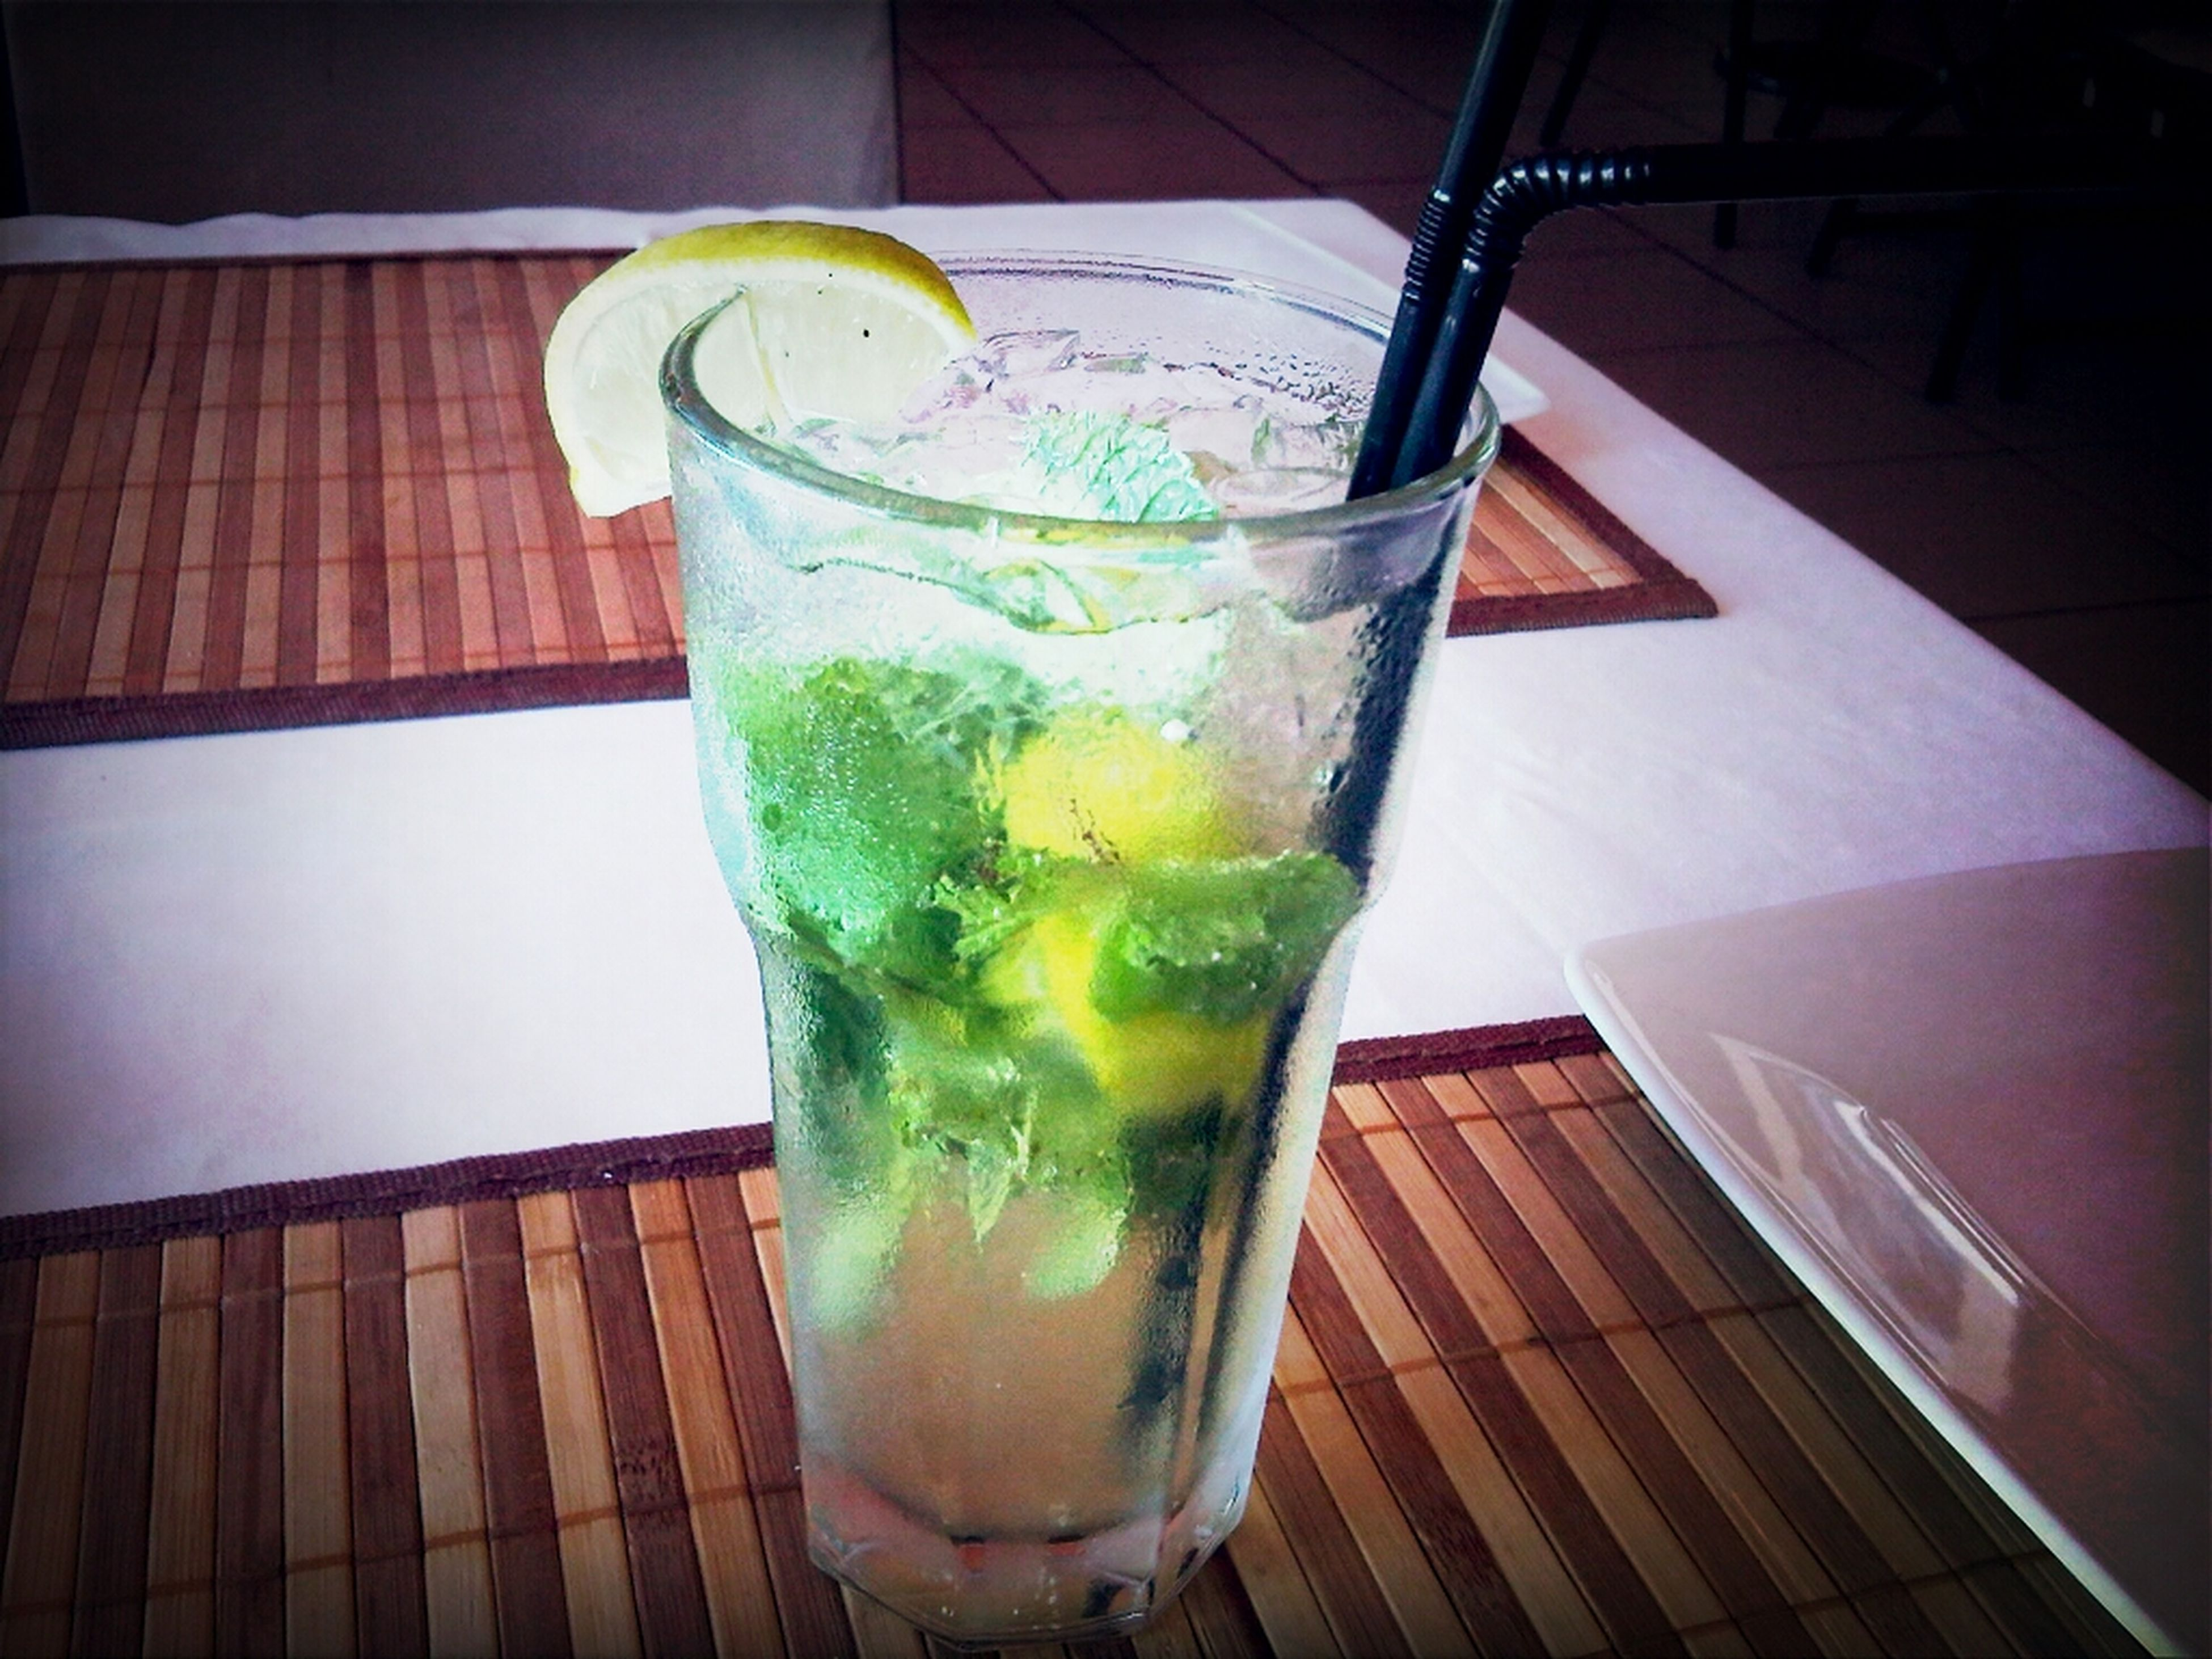 drink, food and drink, table, refreshment, indoors, drinking glass, freshness, still life, glass - material, drinking straw, close-up, glass, juice, healthy eating, alcohol, cocktail, no people, restaurant, green color, lemon